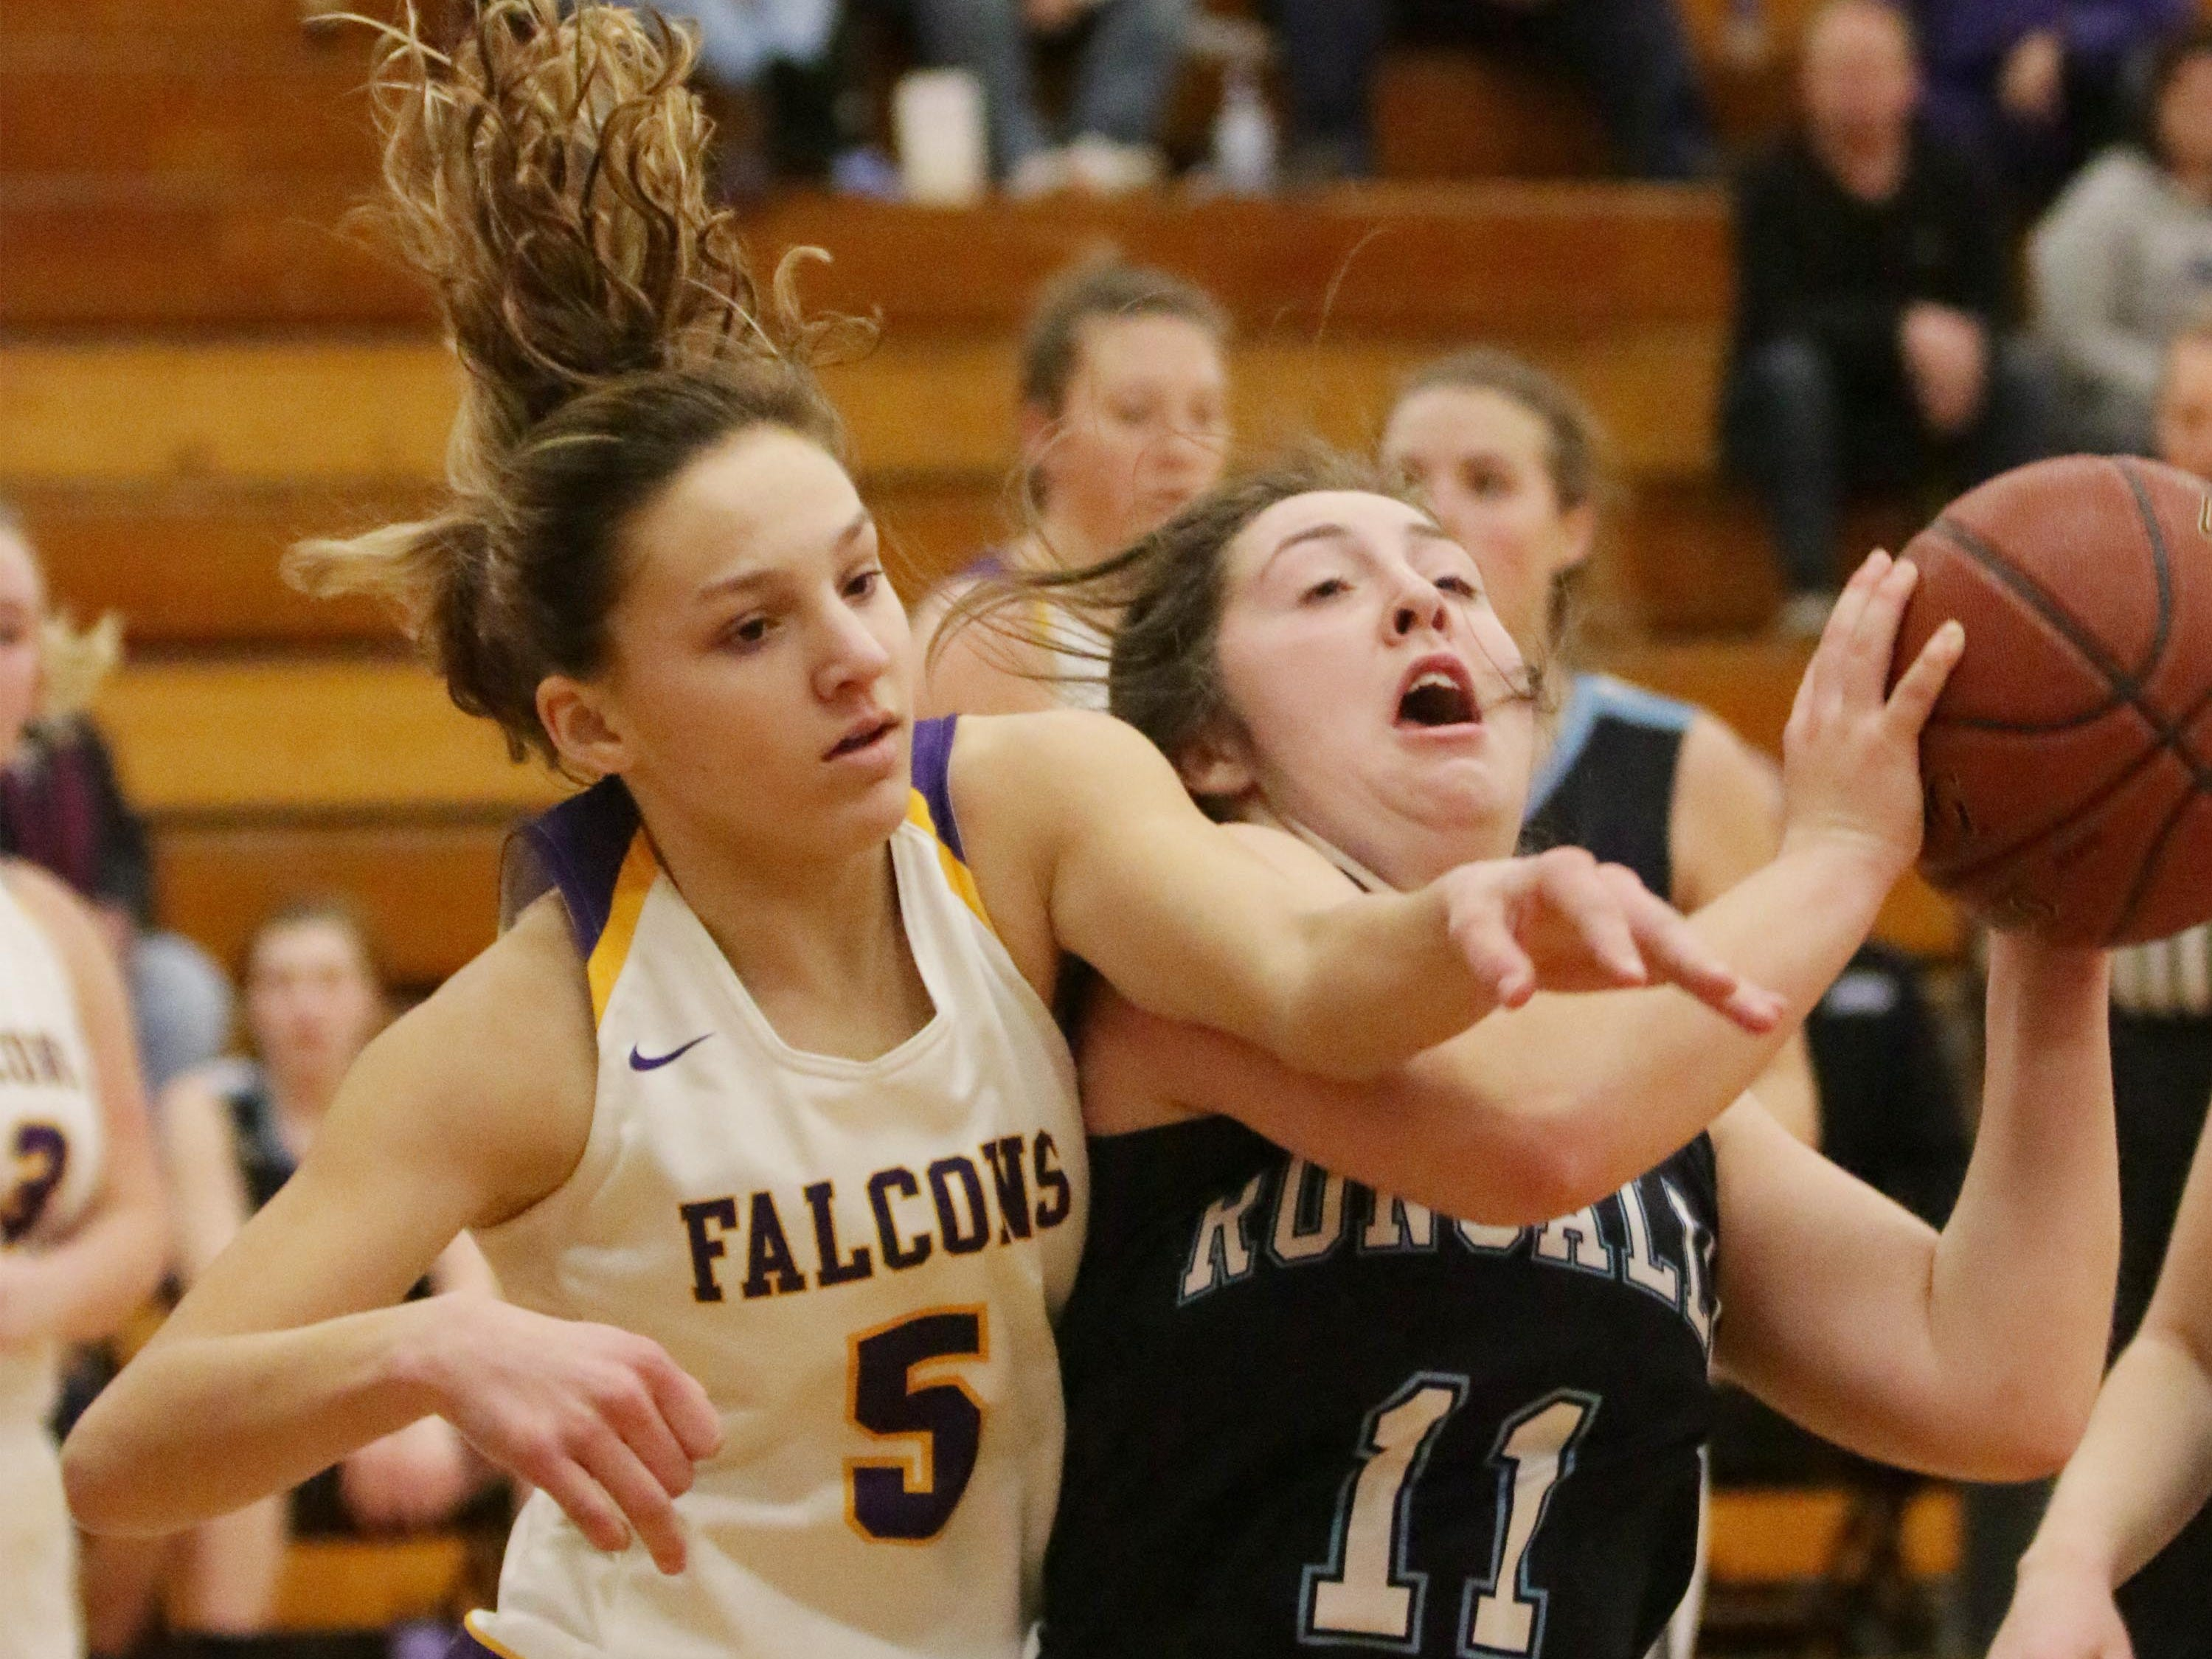 Sheboygan Falls' Madelaine Specht (5) and Roncalli's Abby Stelzer (11) battle for the ball, Friday, January 25, 2019, in Sheboygan Falls, Wis.